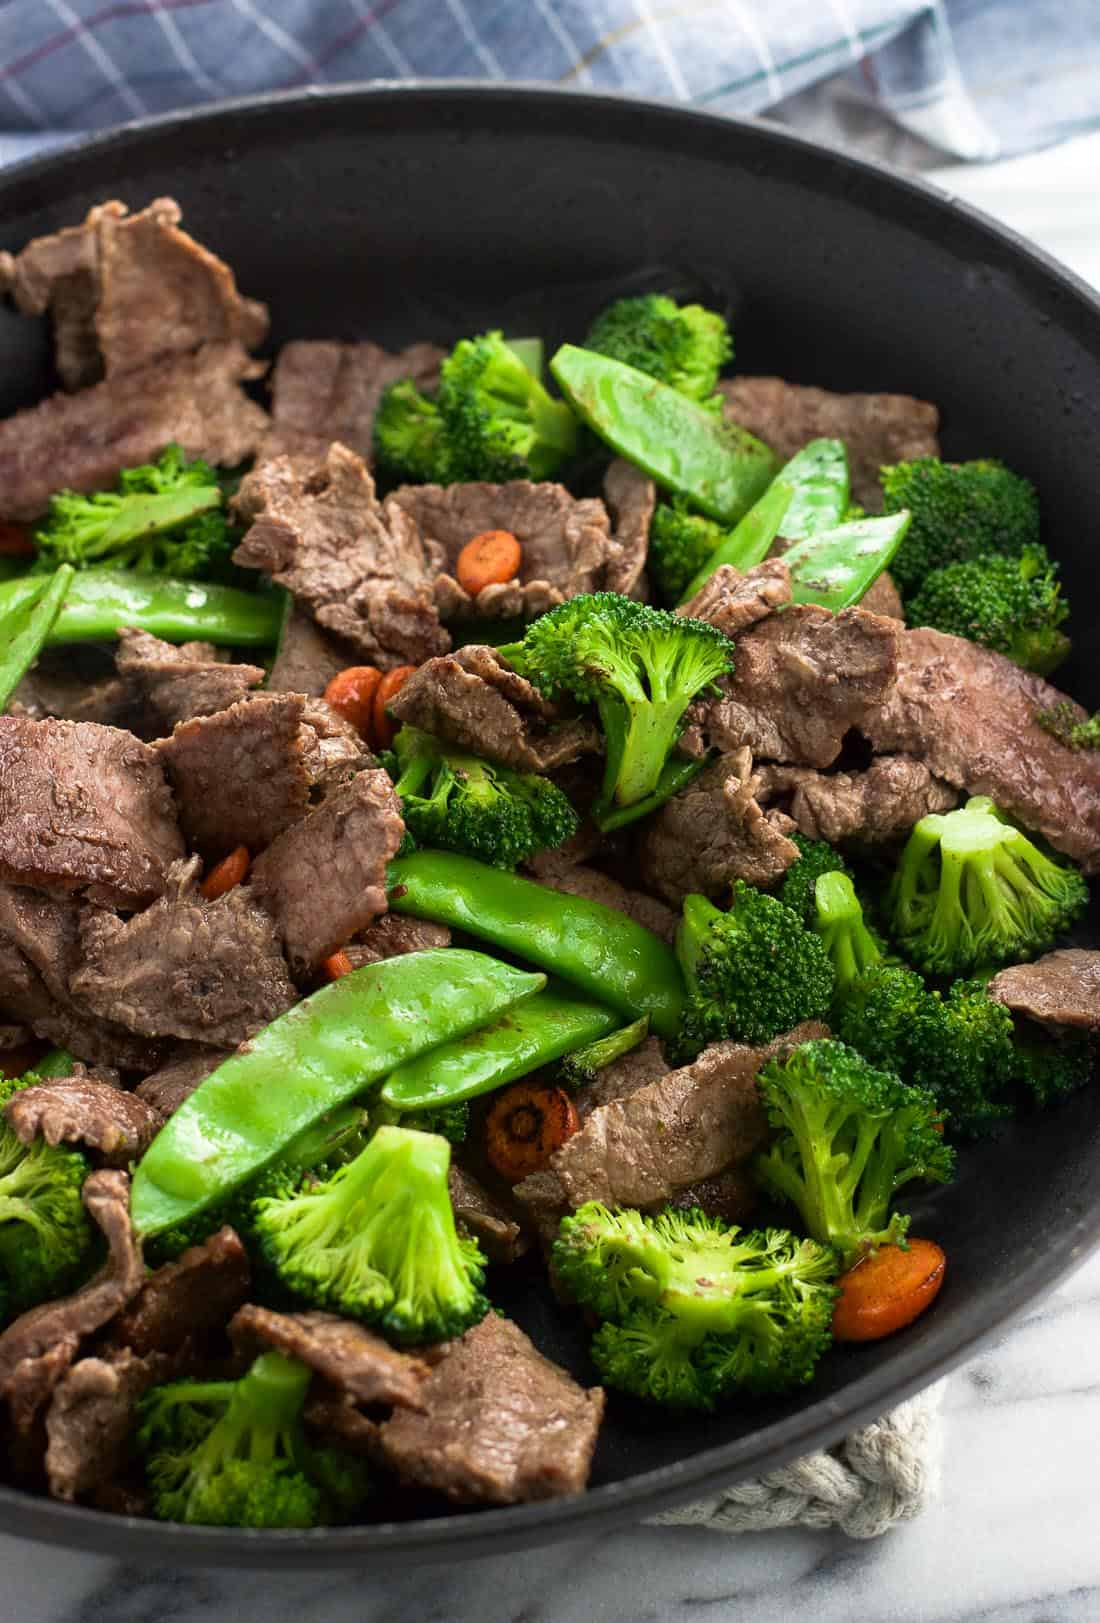 Cooked flank steak strips, broccoli florets, snow peas, and carrots in a skillet.